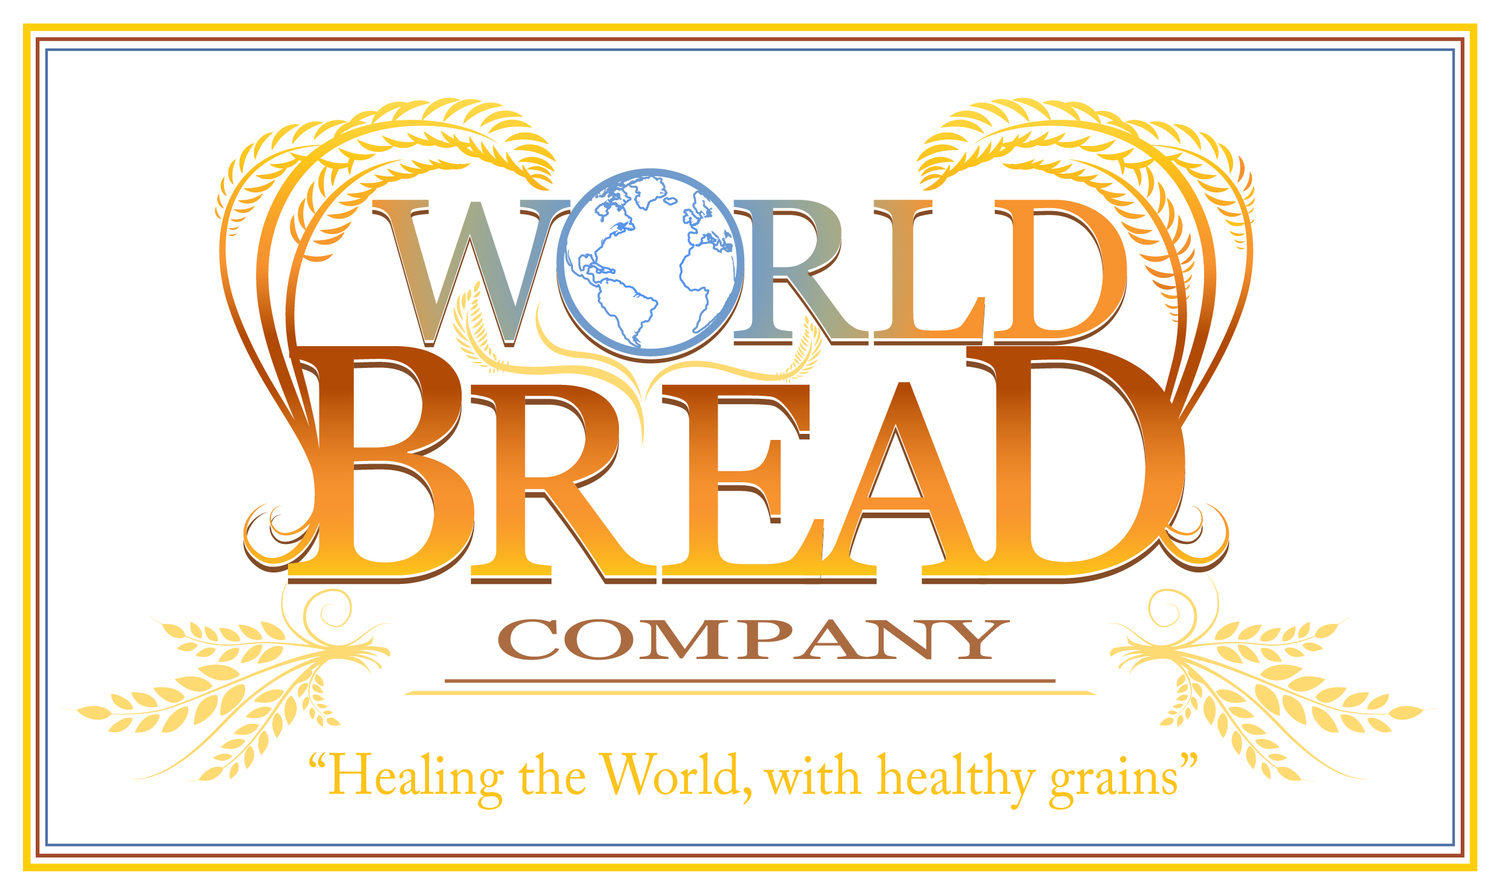 World Bread Company